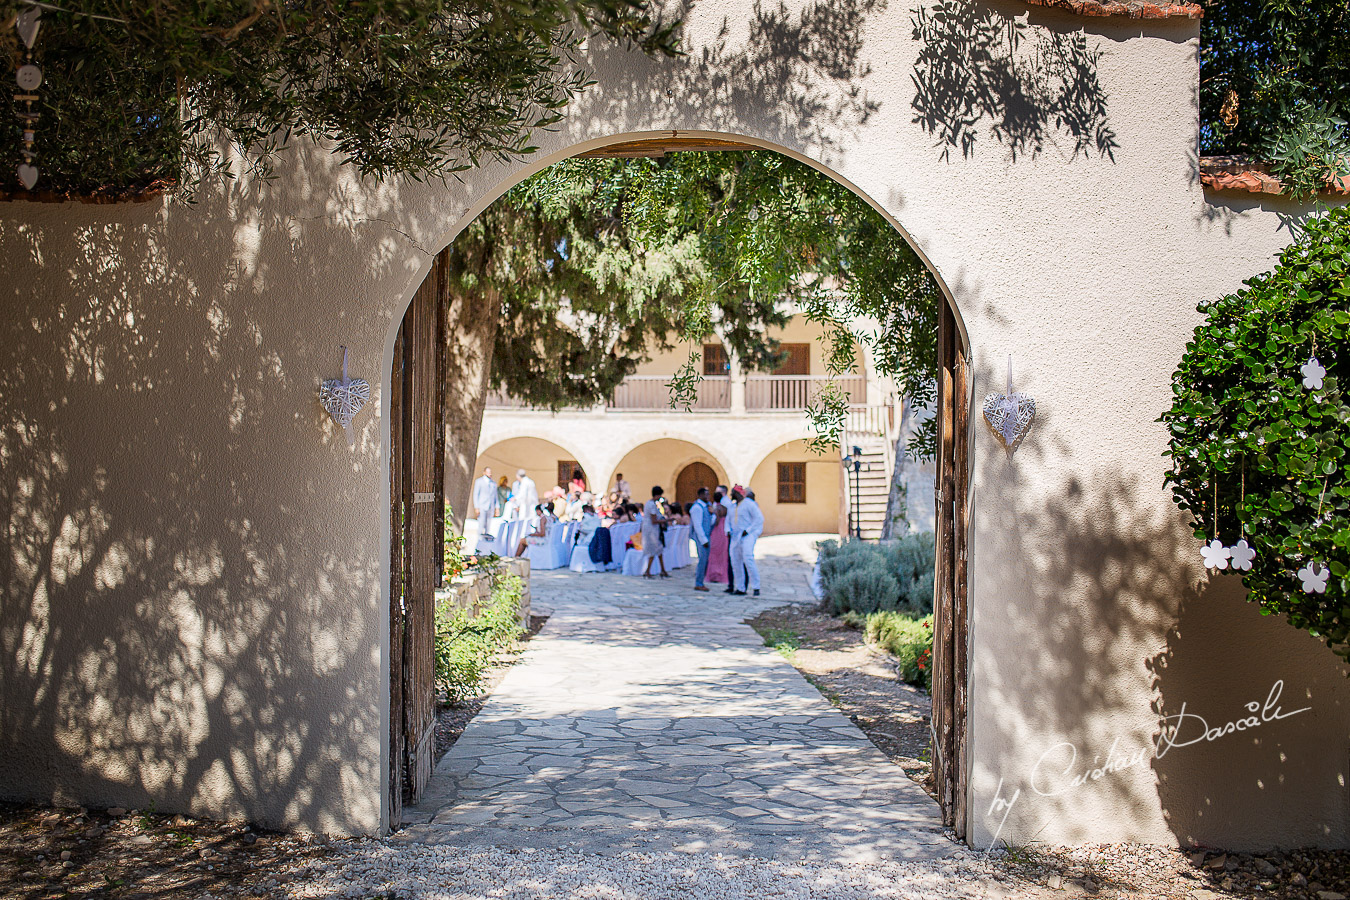 Wedding guests photographed through the Minthis Hills monastery gate, moments captured at a wedding at Minthis Hills in Cyprus, by Cristian Dascalu.